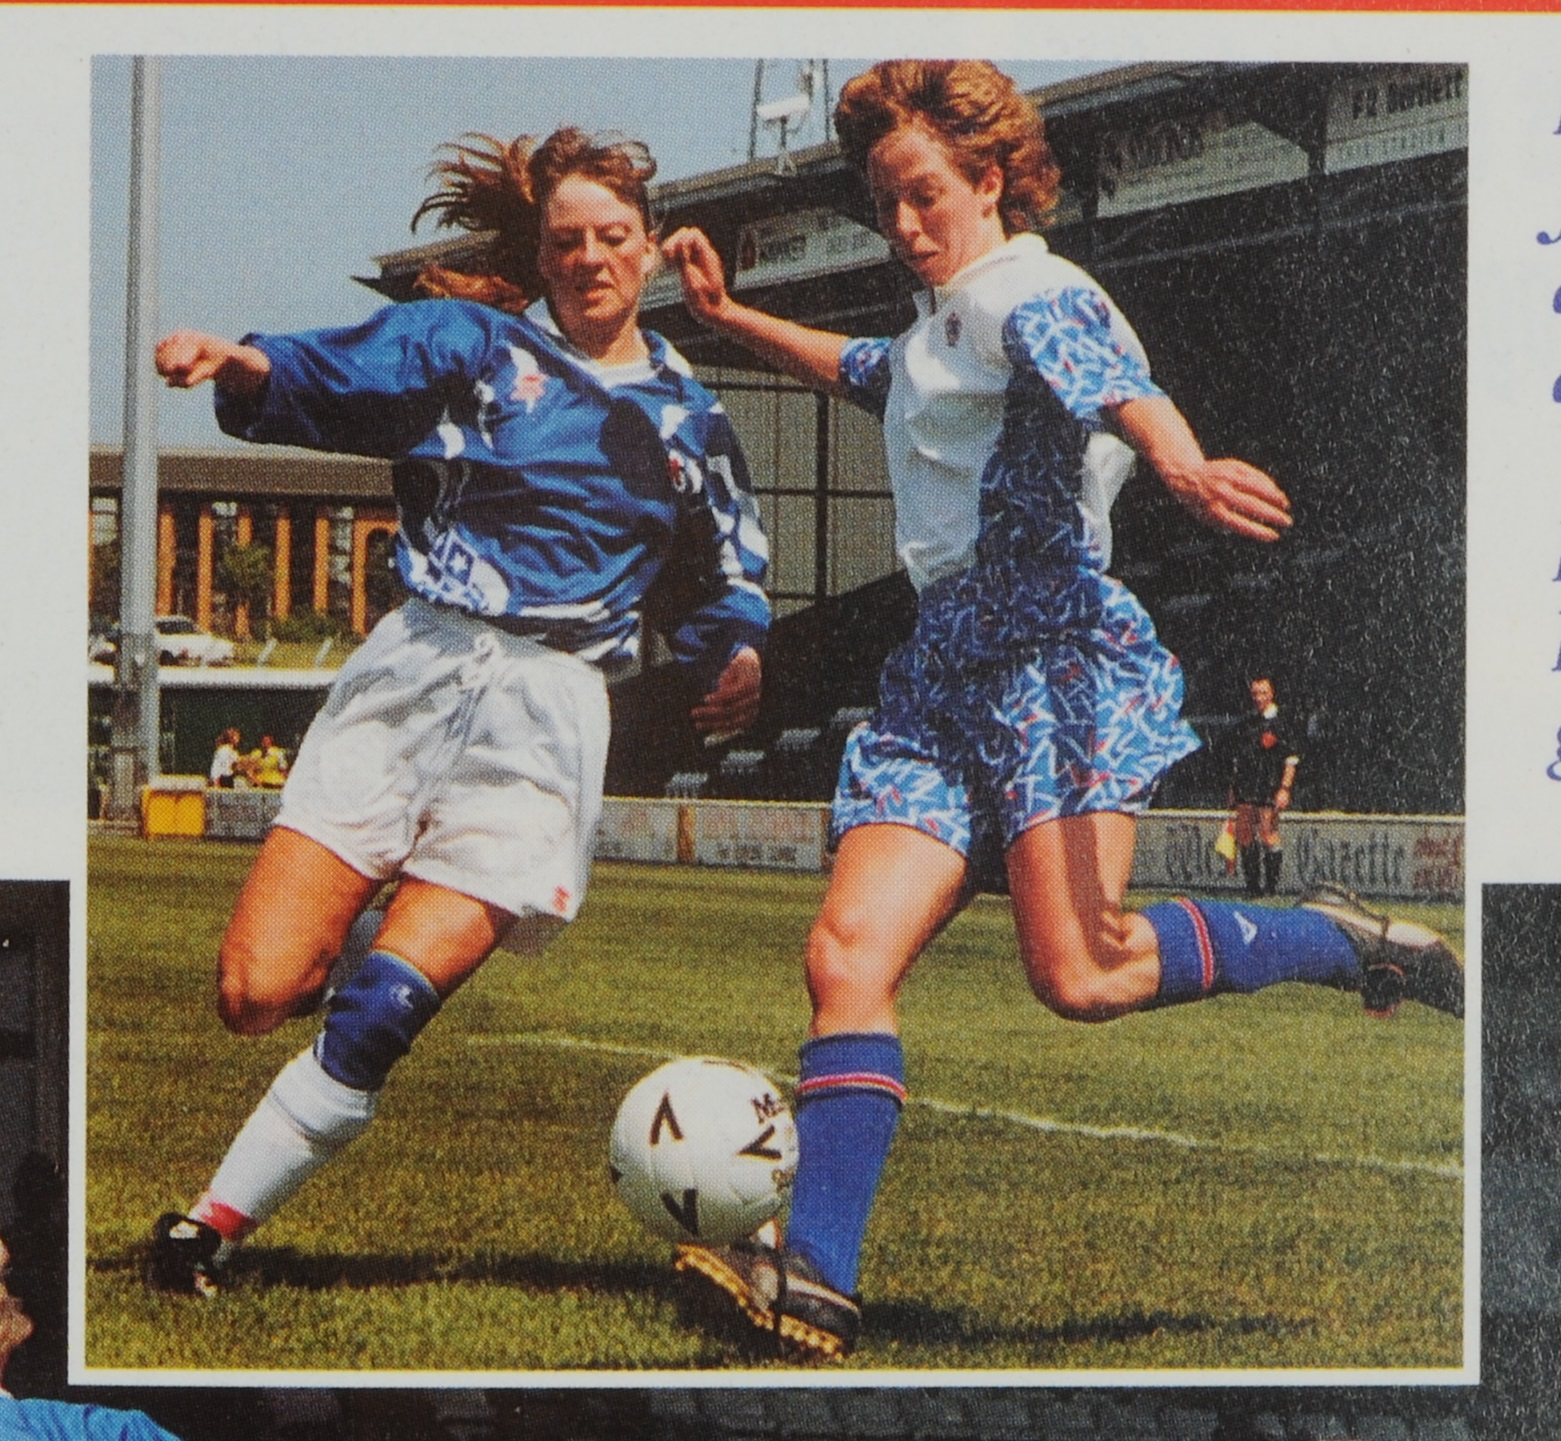 England's Jan Murray under pressure from Iceland defender Arney Maenusdottir, 1992. With kind permission of Patricia Gregory.